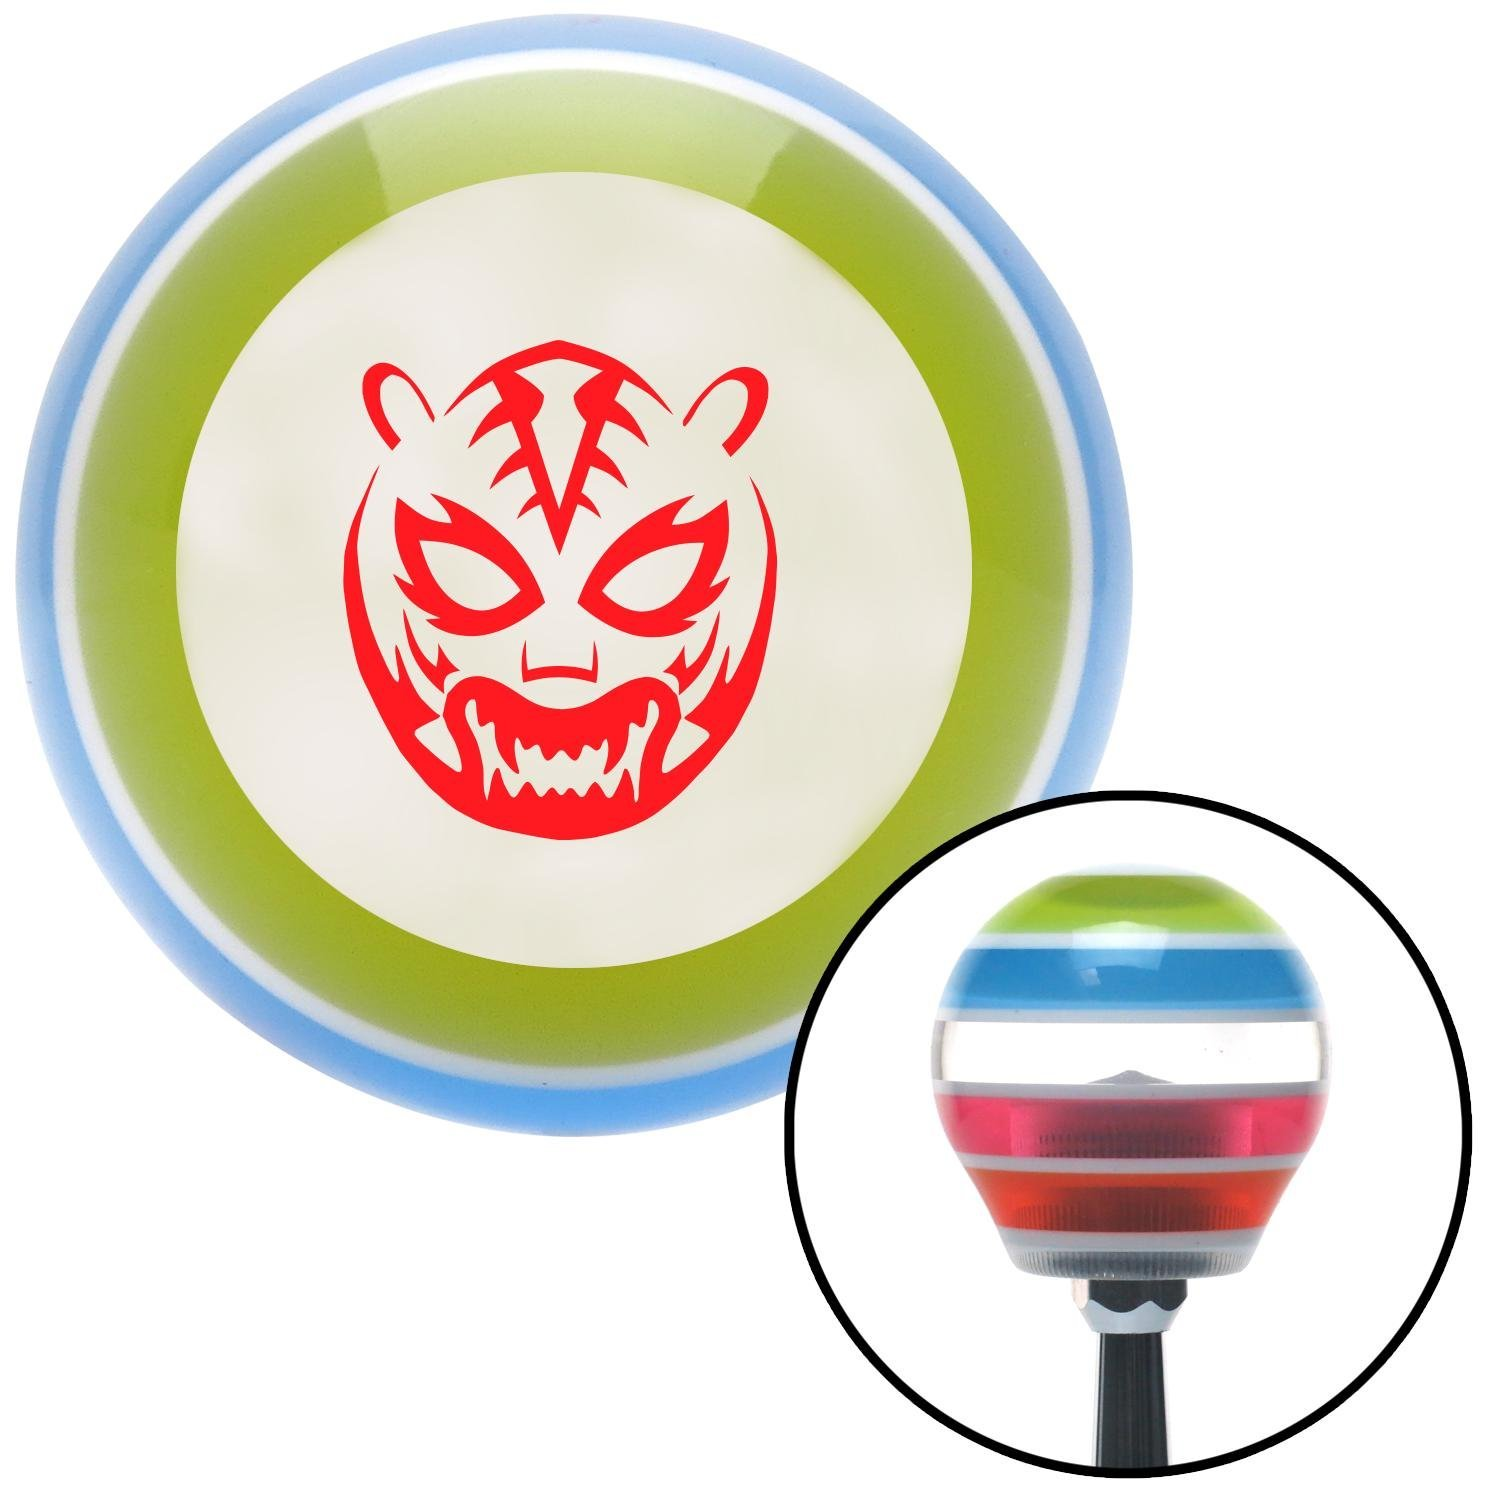 American Shifter 135766 Stripe Shift Knob with M16 x 1.5 Insert Red Lucha Libre Mask